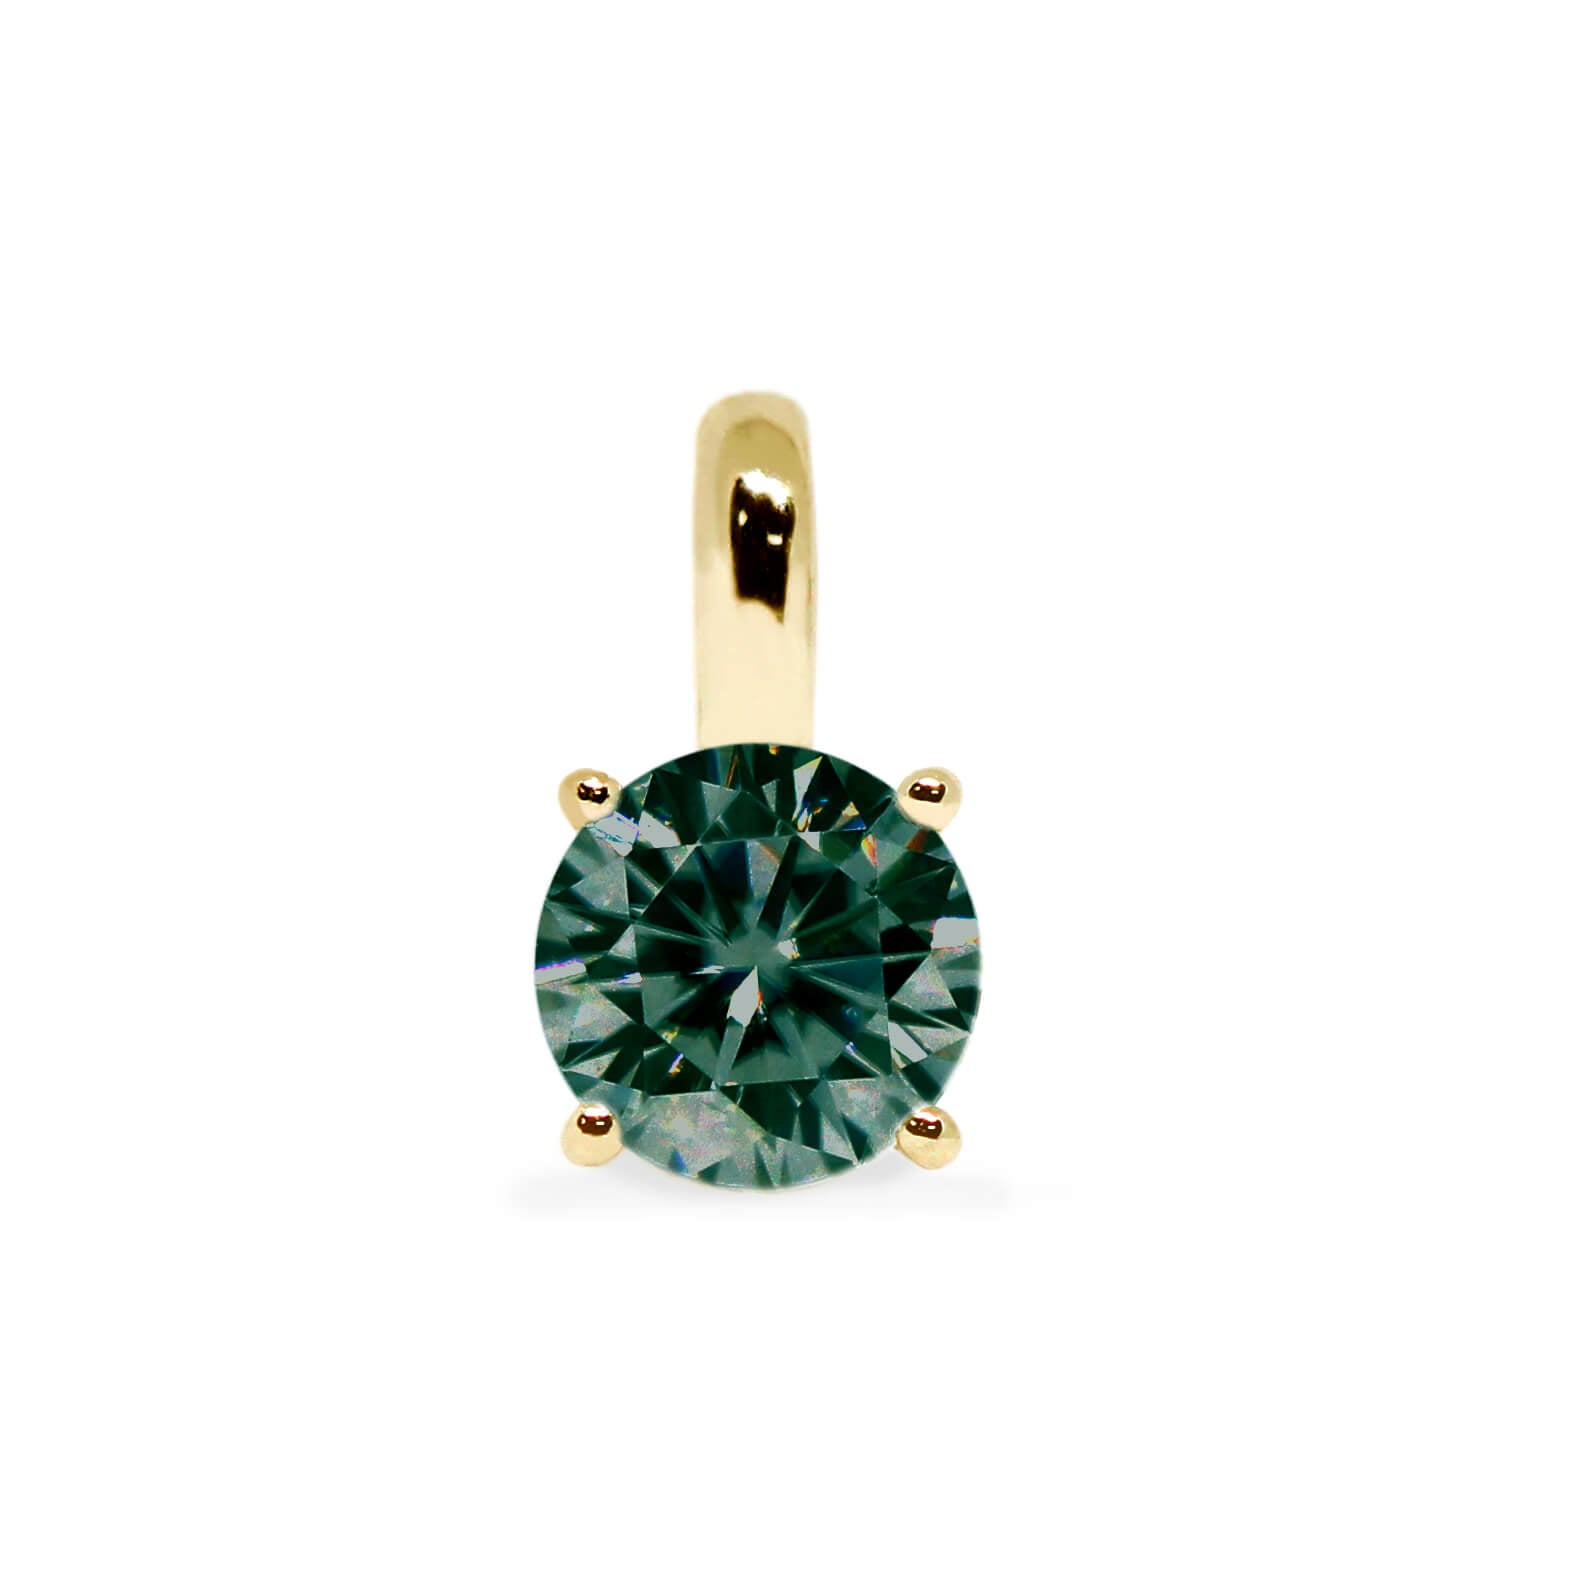 Dark Green Moissanite Round Solitaire 18K Gold Pendant - LeCaine Gems